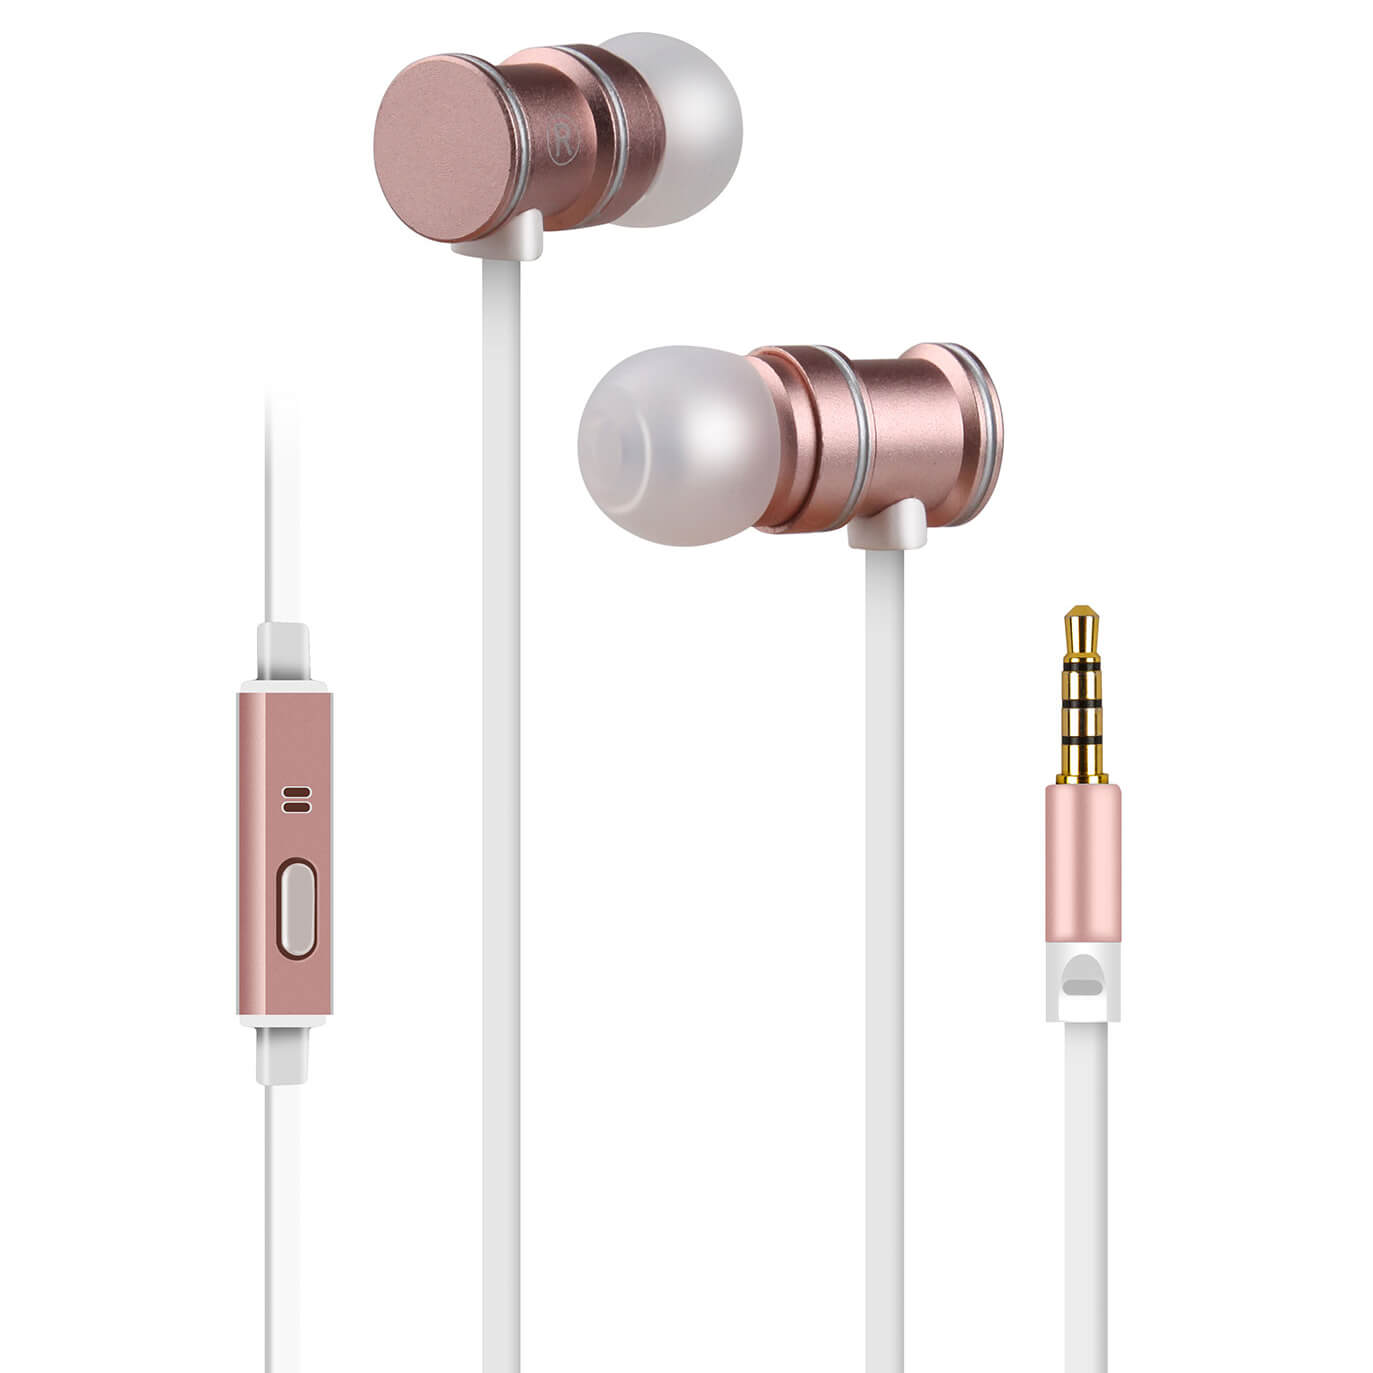 d98b7006993 AV: Link Metallic Magnetic Stereo Noise Cancelling Earphones with Tangle  Free Cable - Rose Gold Electronics | Zavvi